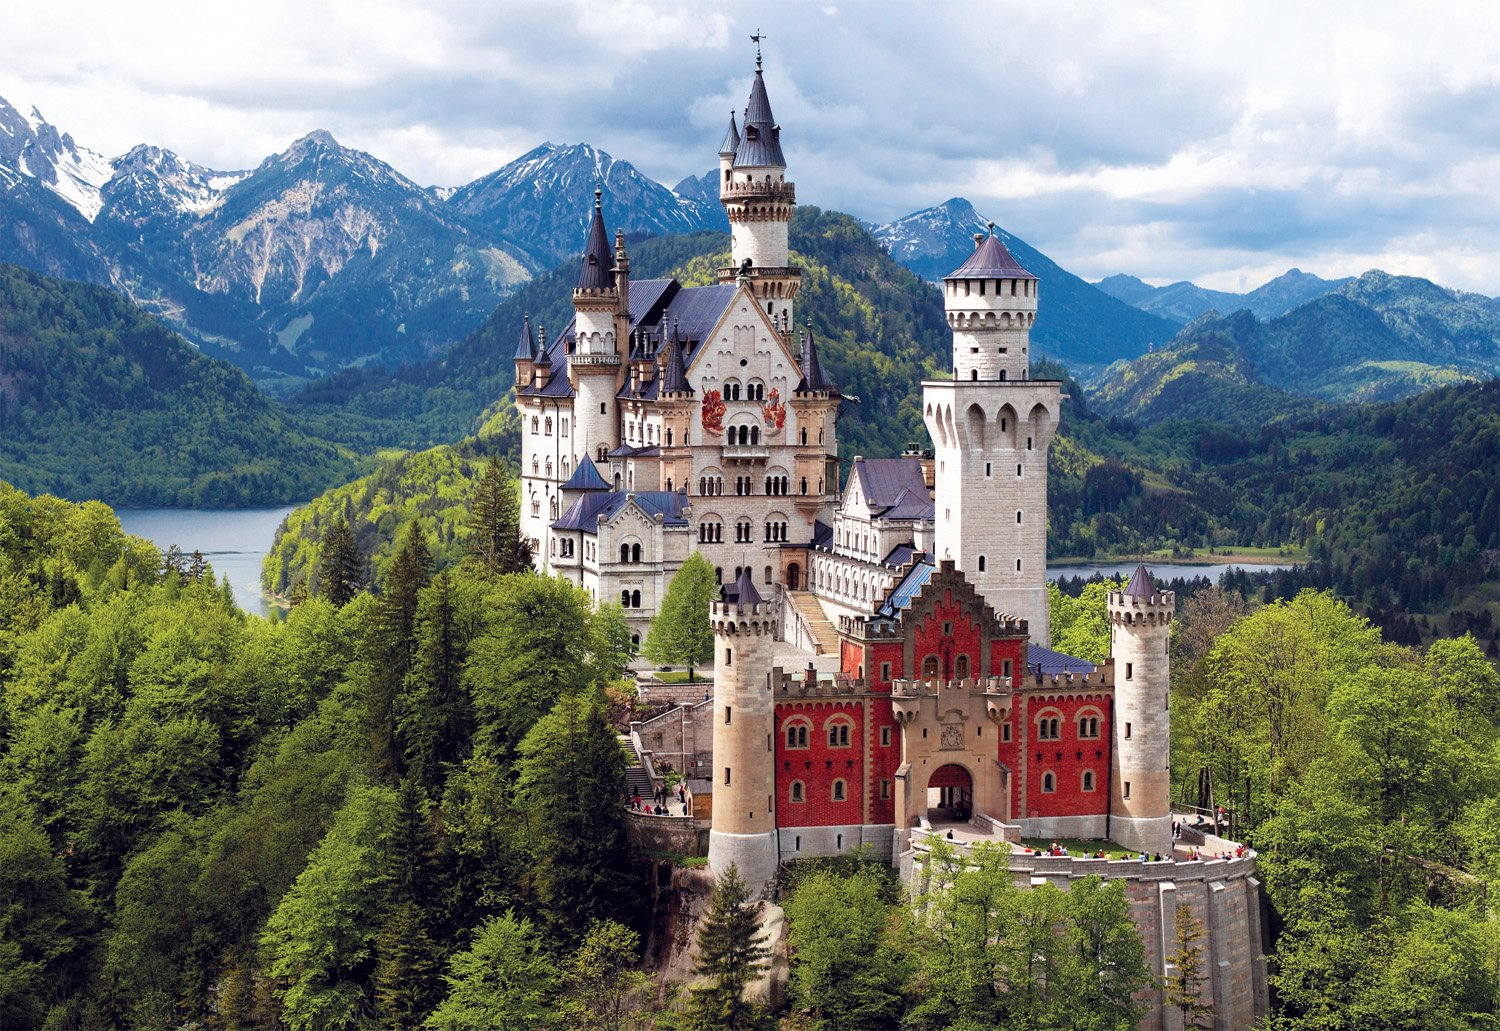 Buffalo Games 2000pc, Neuschwanstein Castle, Bavaria - 2000pc Jigsaw Puzzle by Buffalo Games